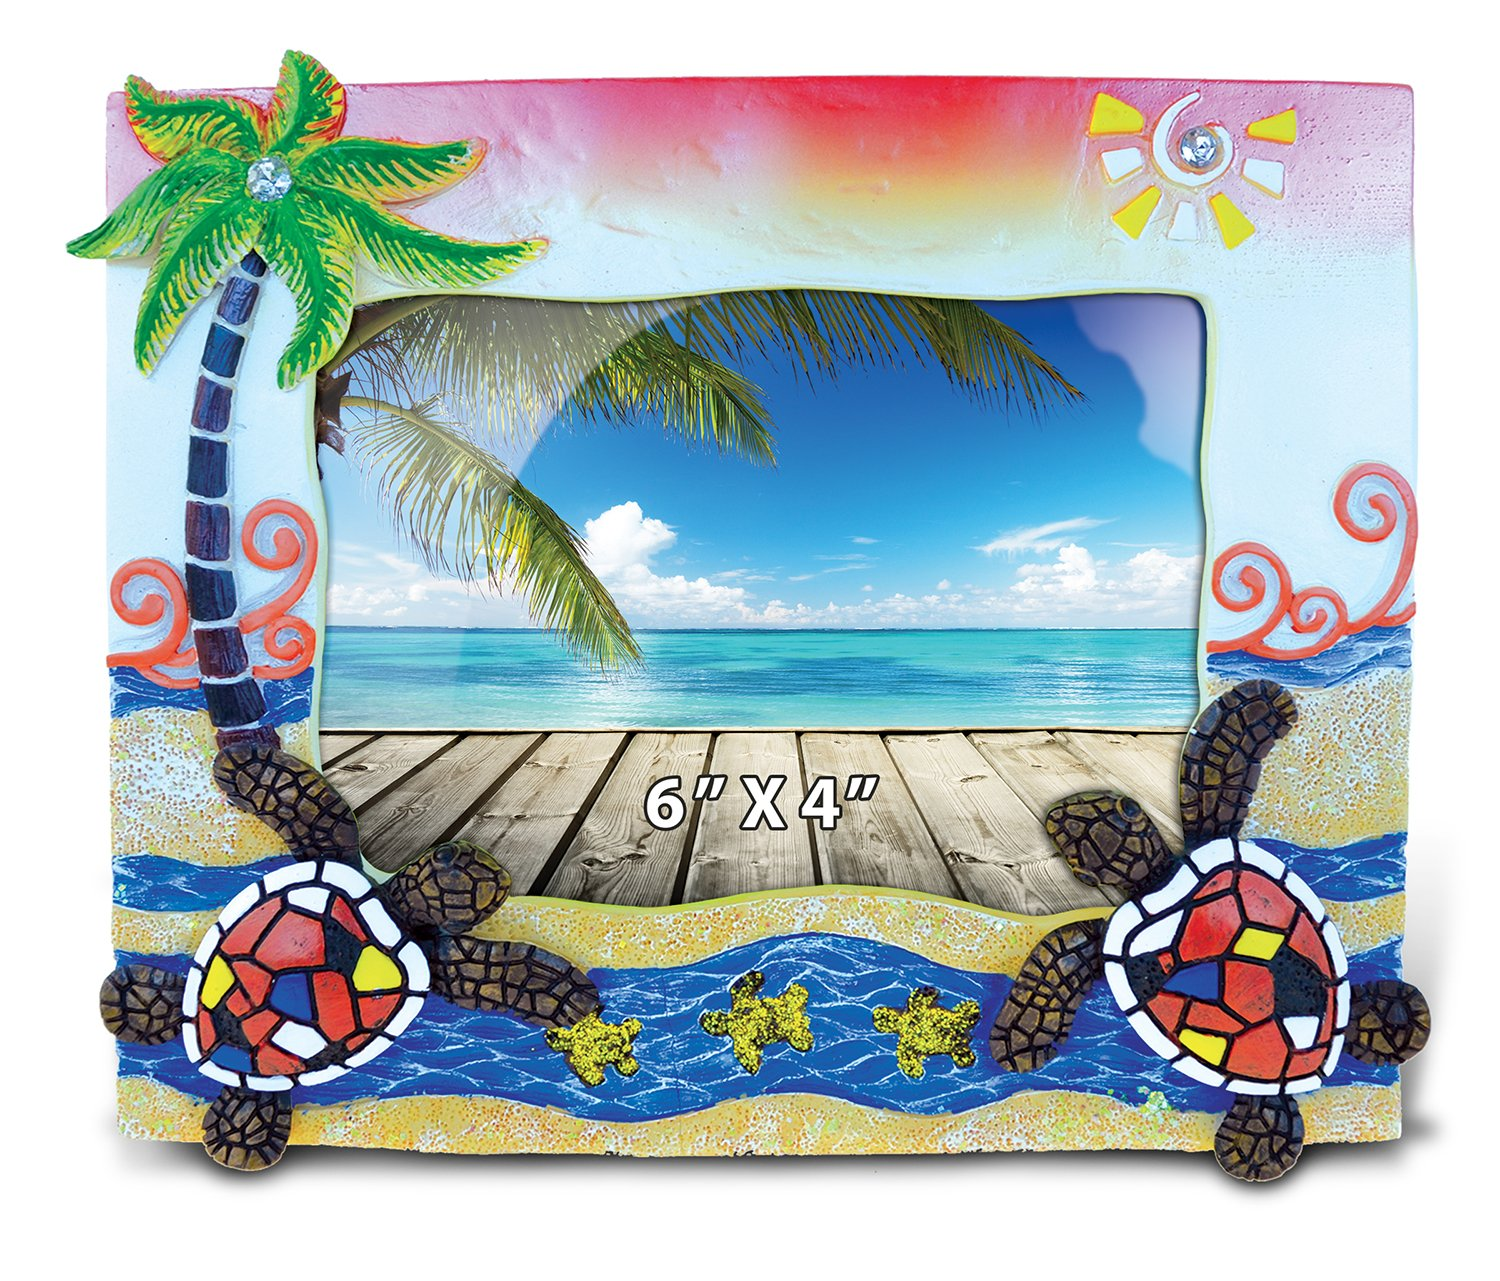 Puzzled Resin Sea Turtle Mosaic Picture Frame, 6 X 4 Inch Sculptural Photo Holder Intricate & Meticulous Detailing Art Handcrafted Tabletop Accent Accessory Tropical Beach Themed Home Décor